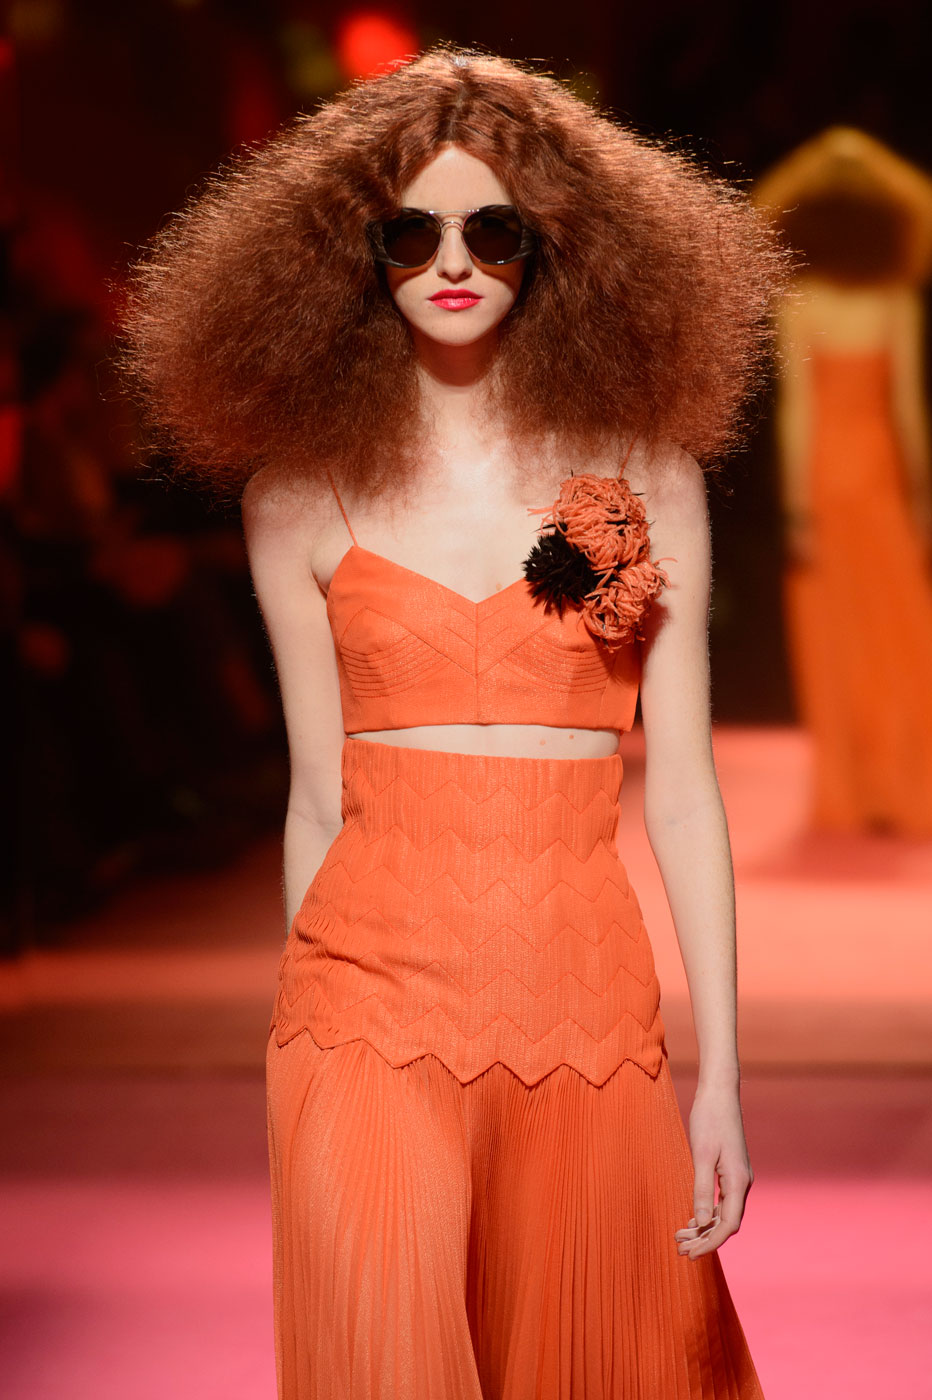 Schiaparelli-fashion-runway-show-haute-couture-paris-spring-summer-2015-the-impression-31